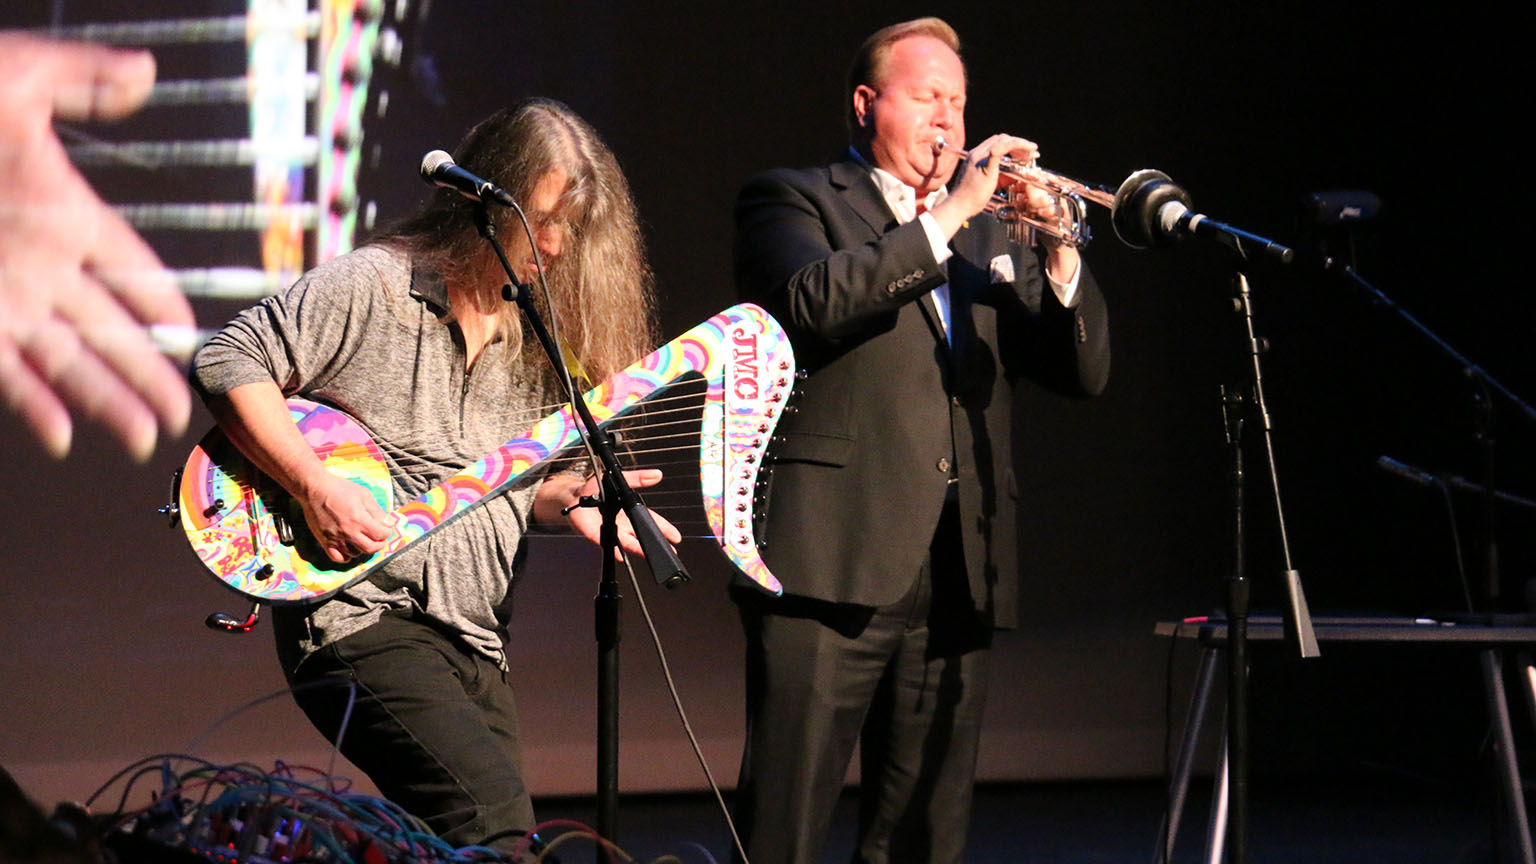 One man playing a trumpet, while another man plays a harp/guitar hybrid with a tie dye design.